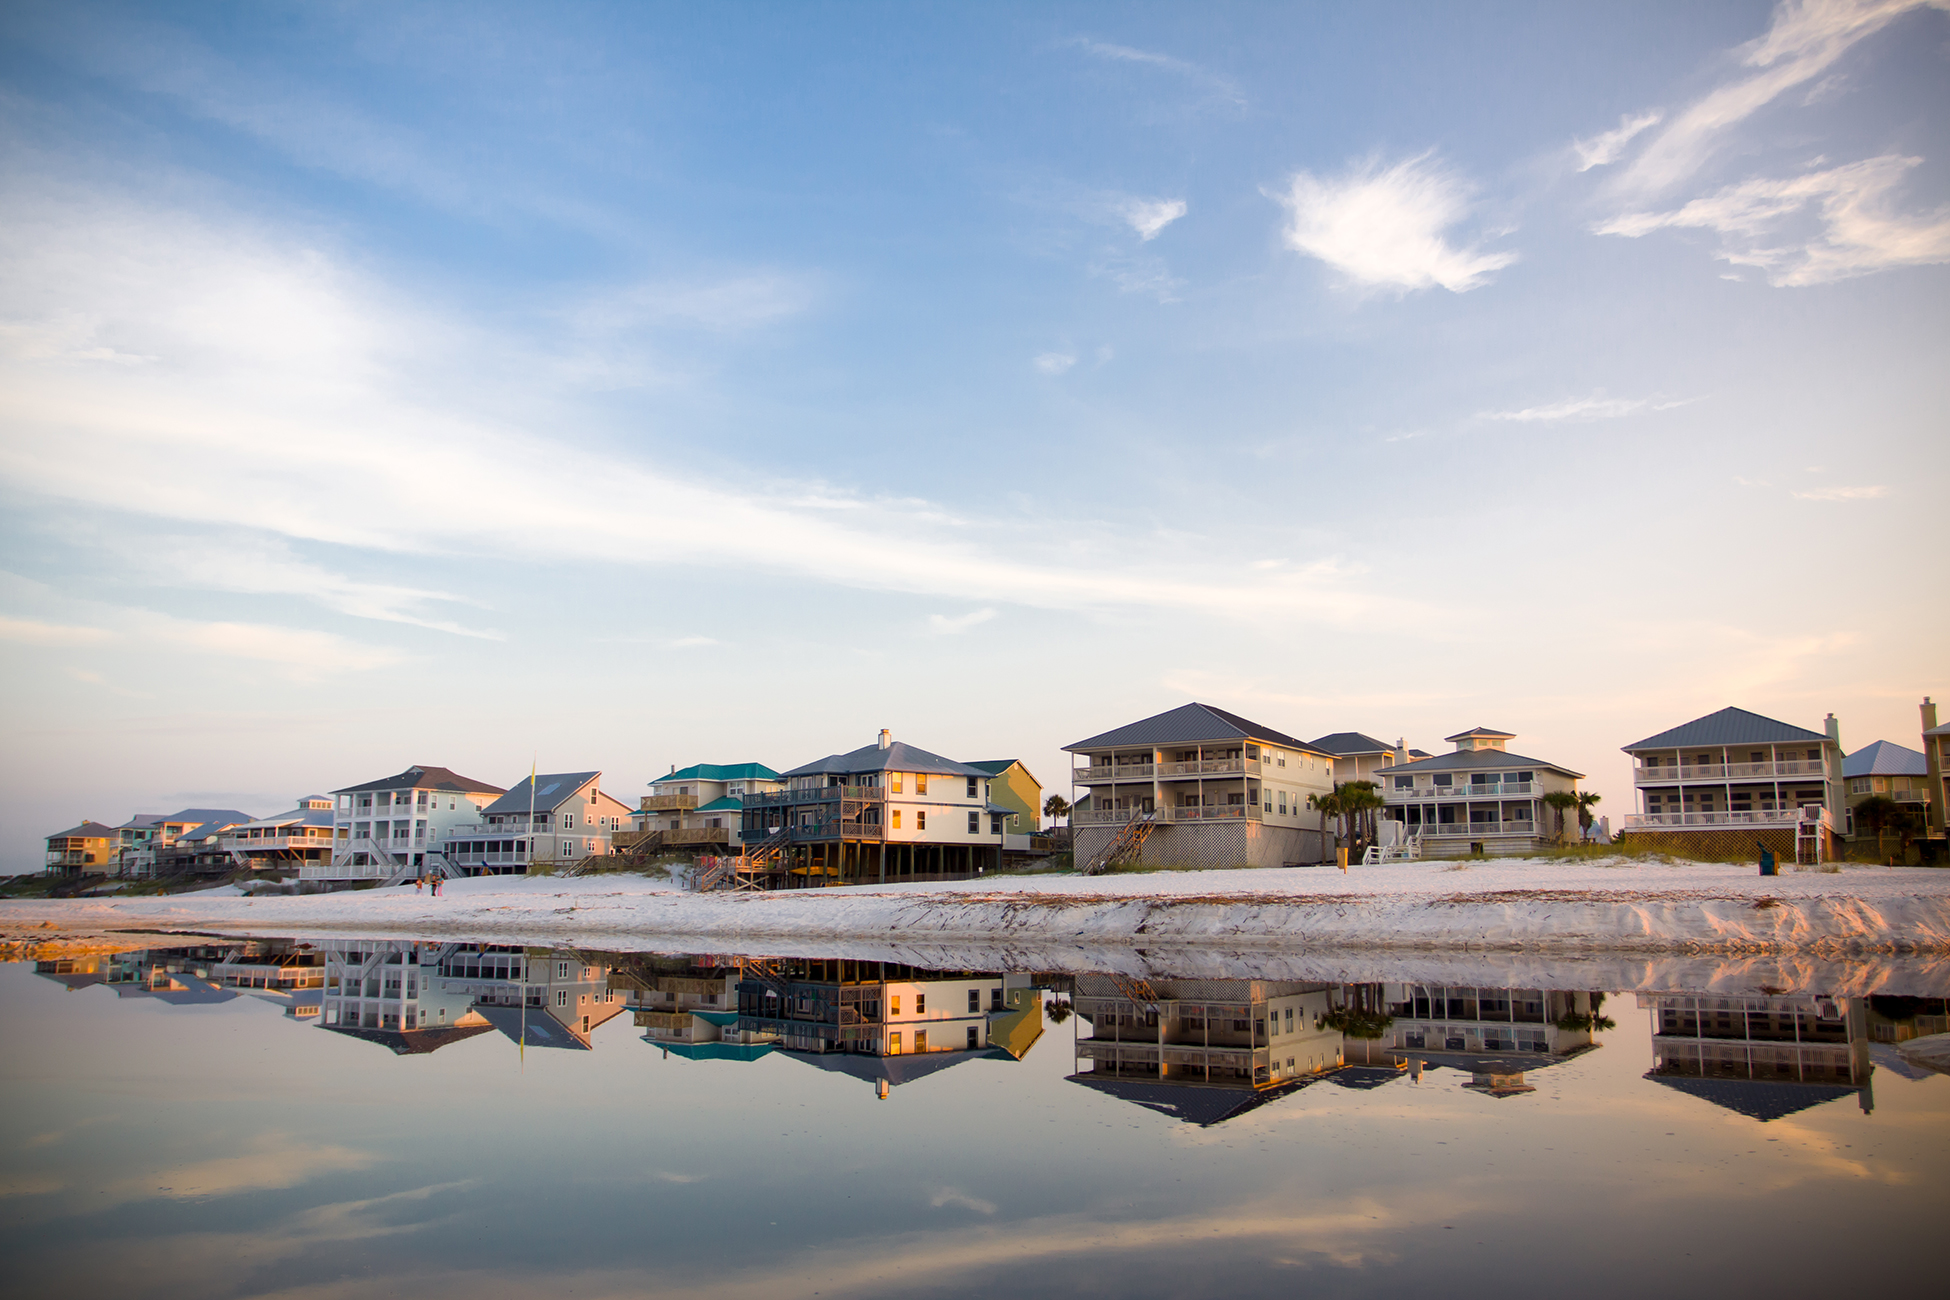 Beach houses reflected in the tide pool.